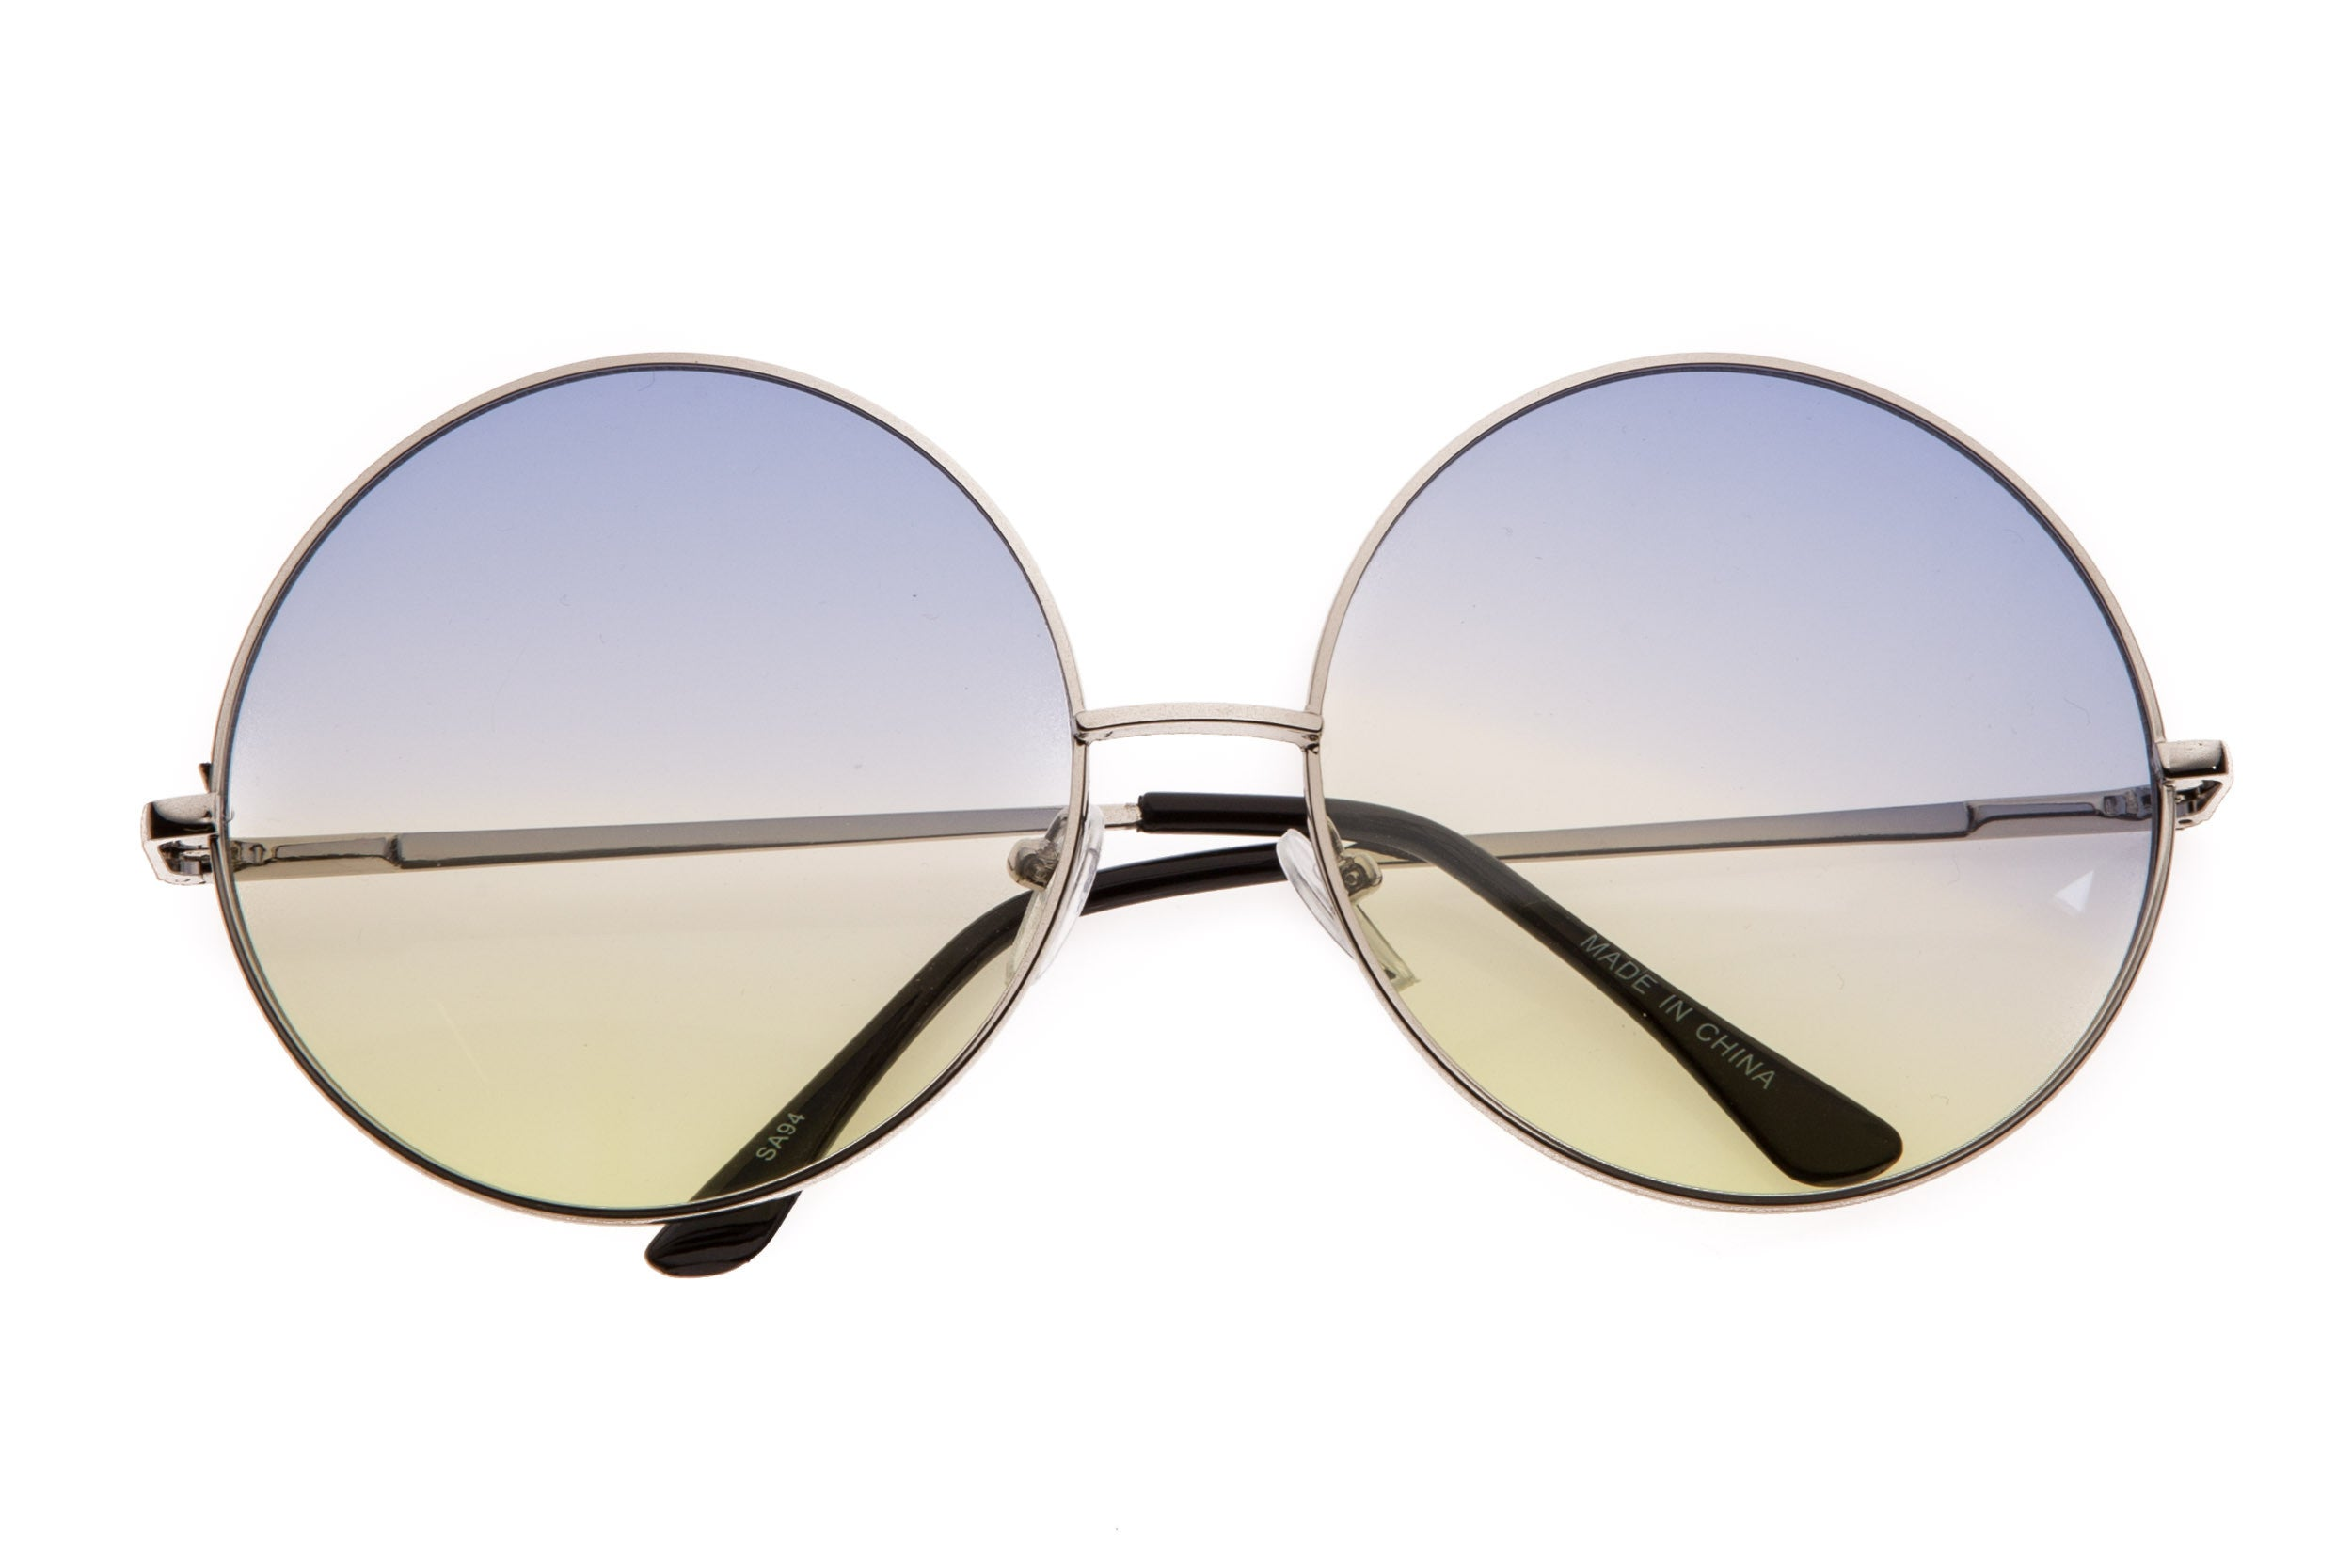 Woodstock Sunglasses